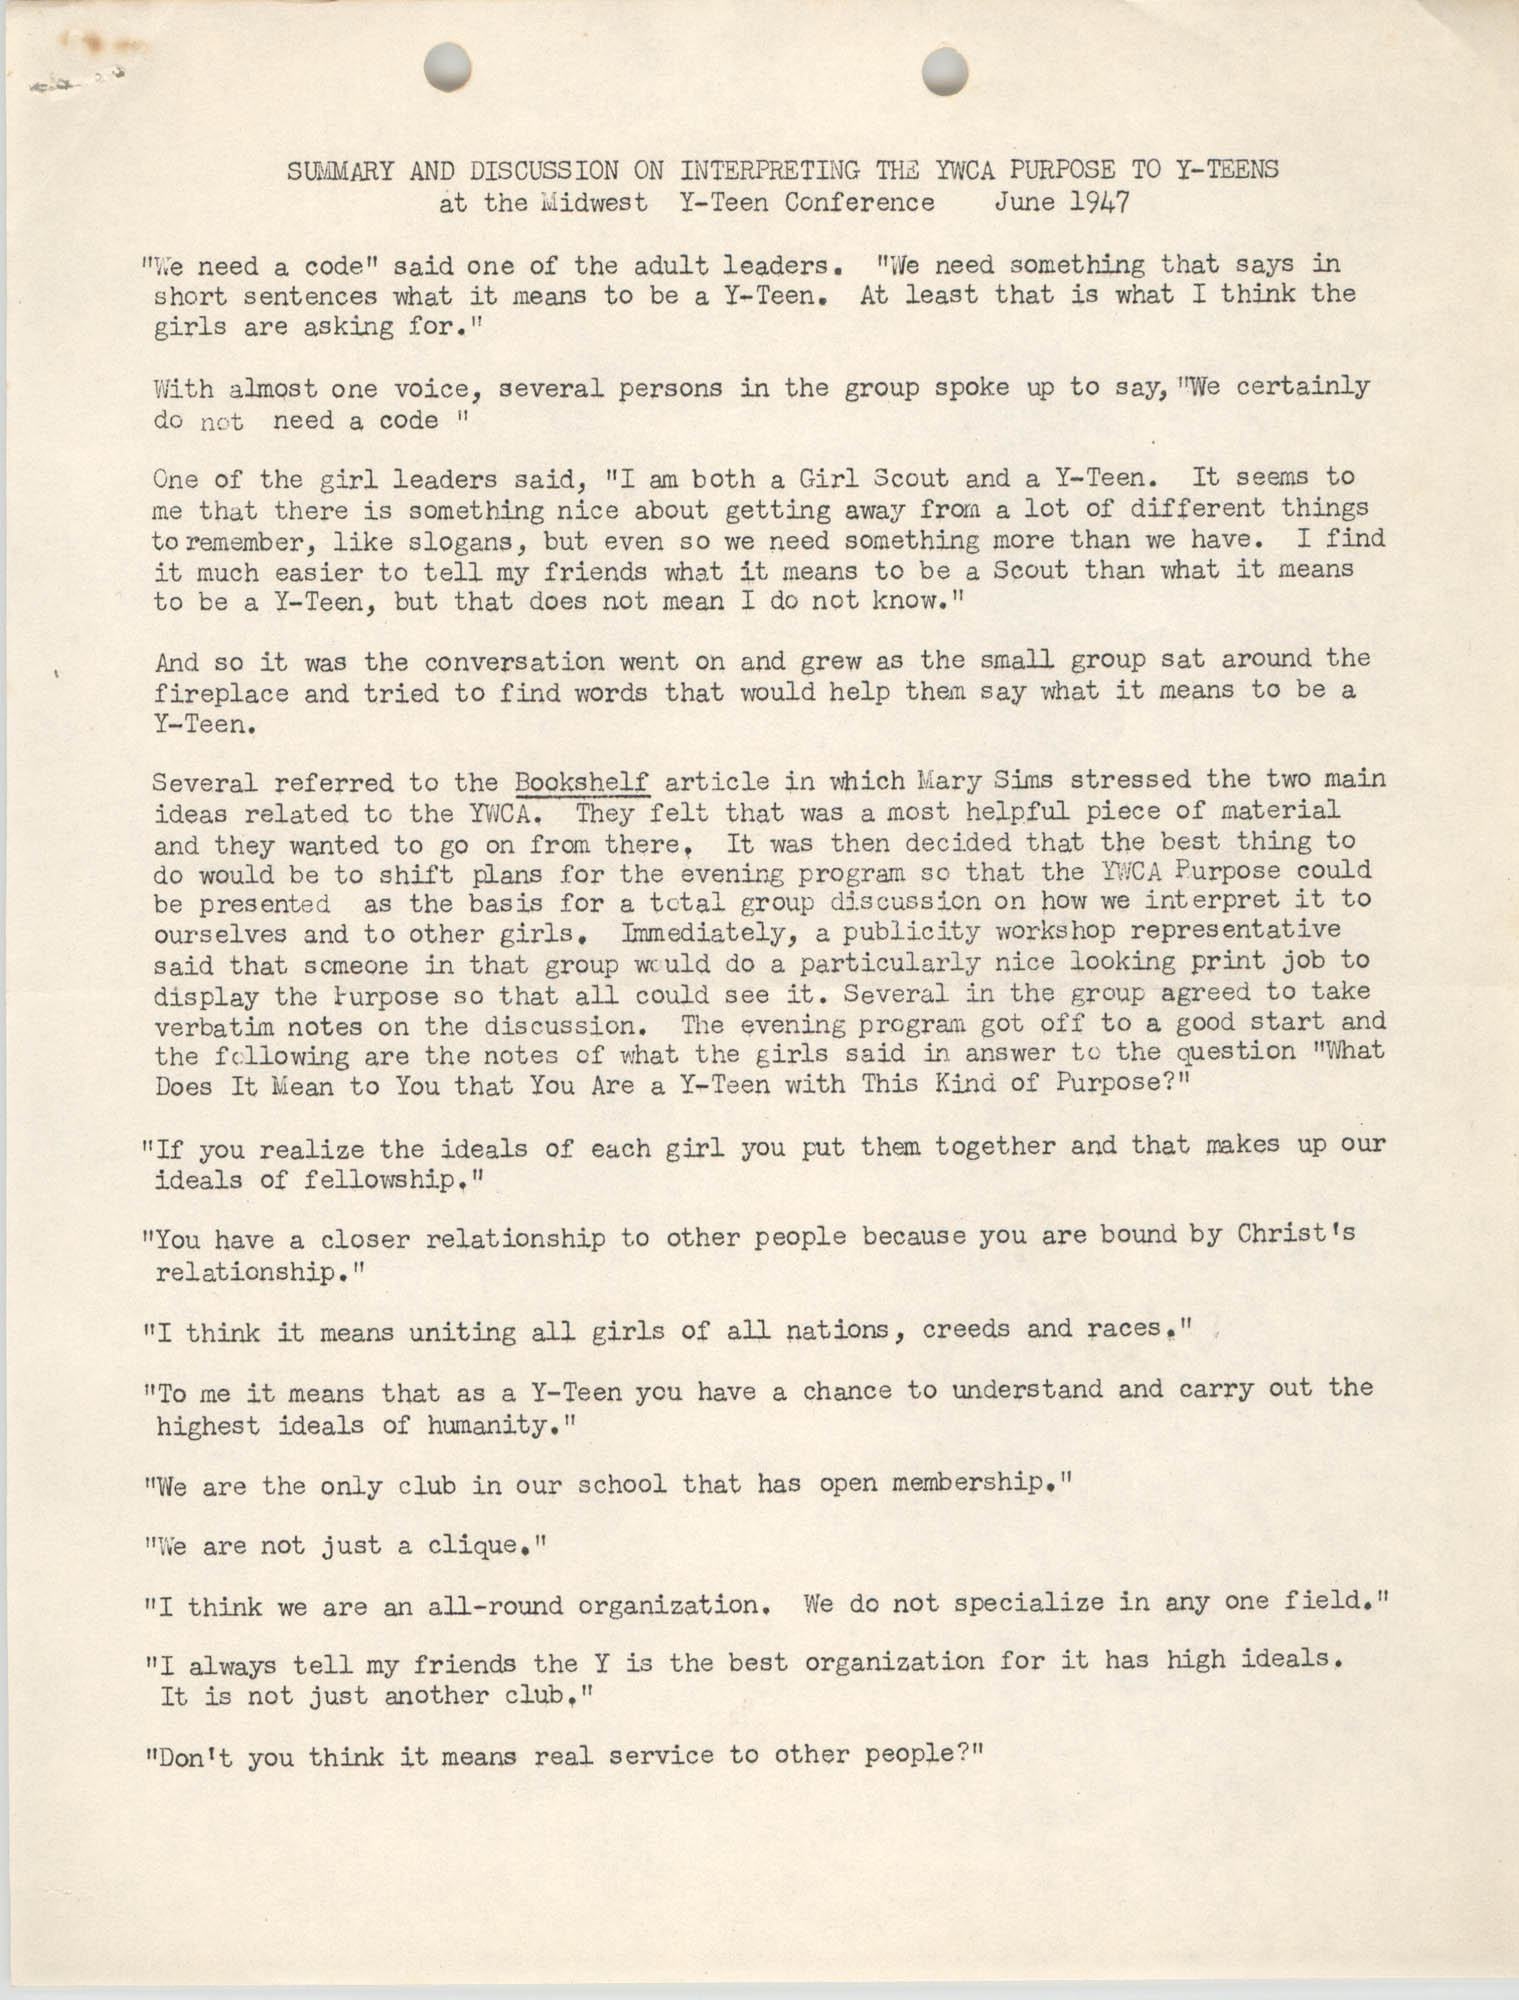 Summary and Discussion on Interpreting the Y.W.C.A. Purpose to Y-Teens, June 1947, Page 1